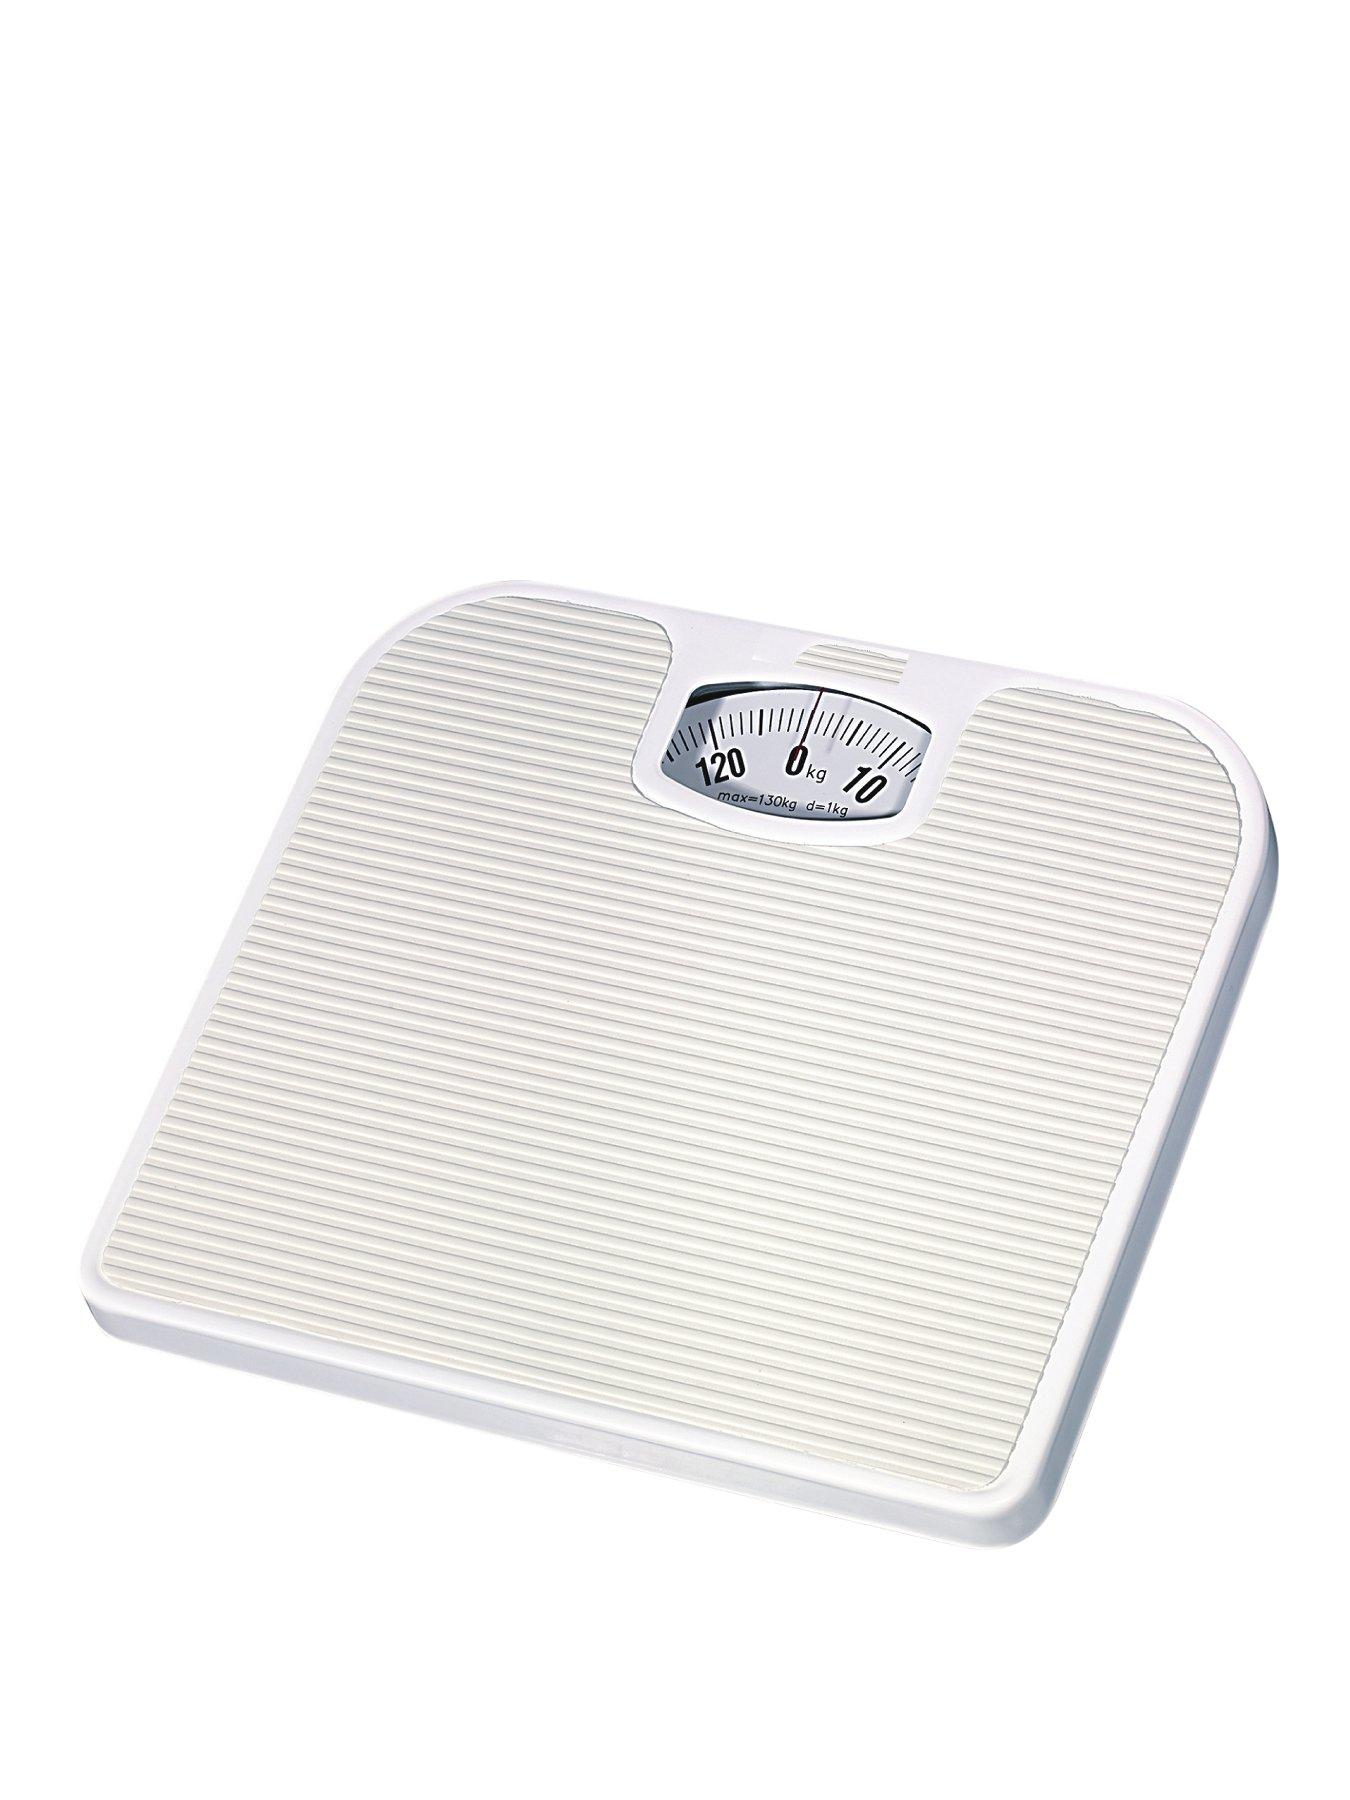 White Mechanical Bathroom Scales at Littlewoods